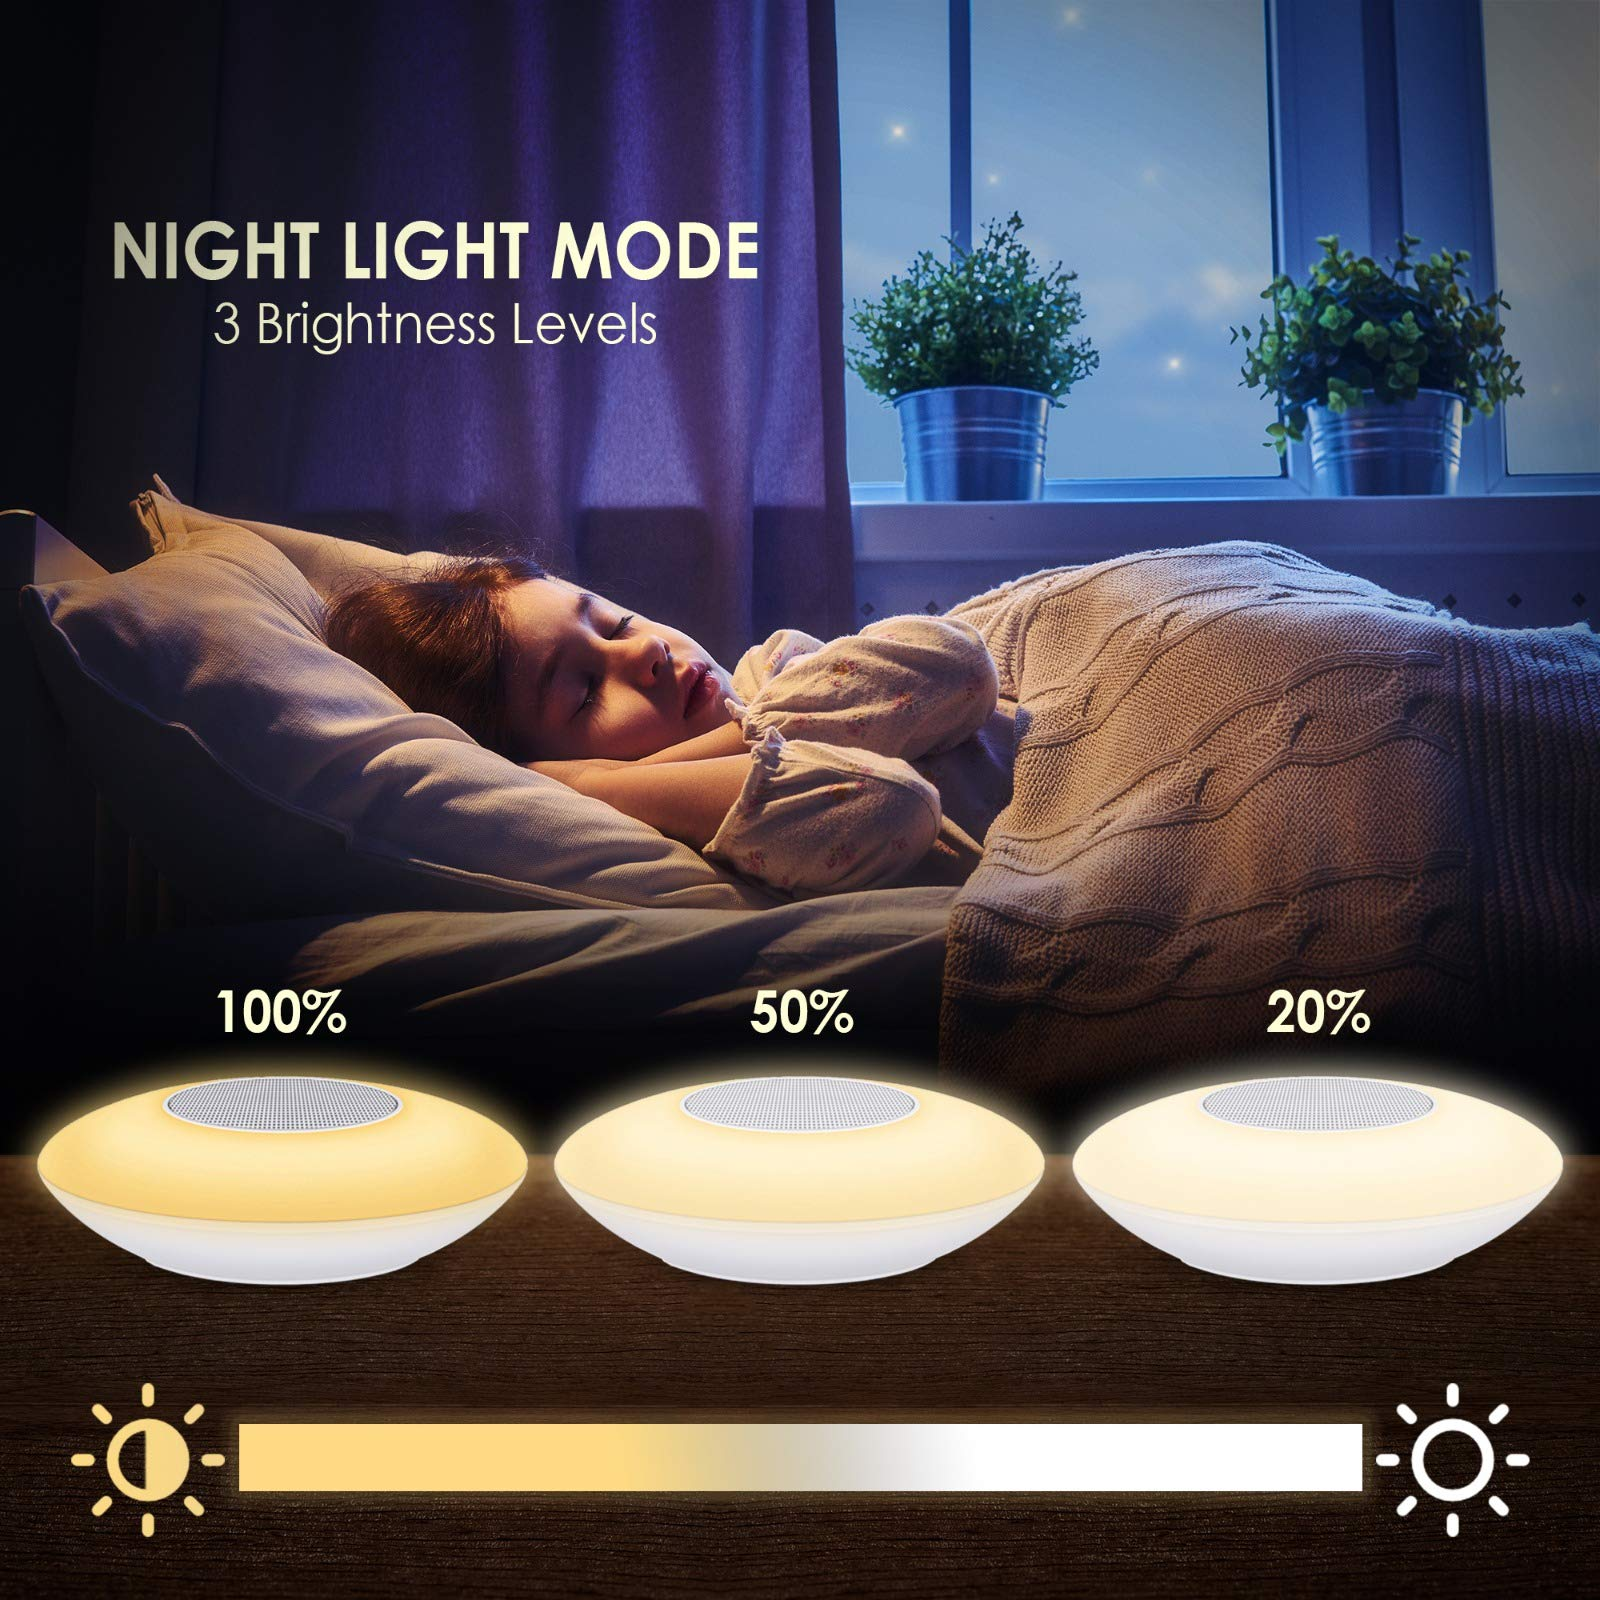 Night Light Bluetooth Speaker, Portable Wireless Bluetooth Speakers, Touch Control, Color LED Speaker, Bedside Table Lamp, Speakerphone/AUX-in Supported (White), SHAVA X6